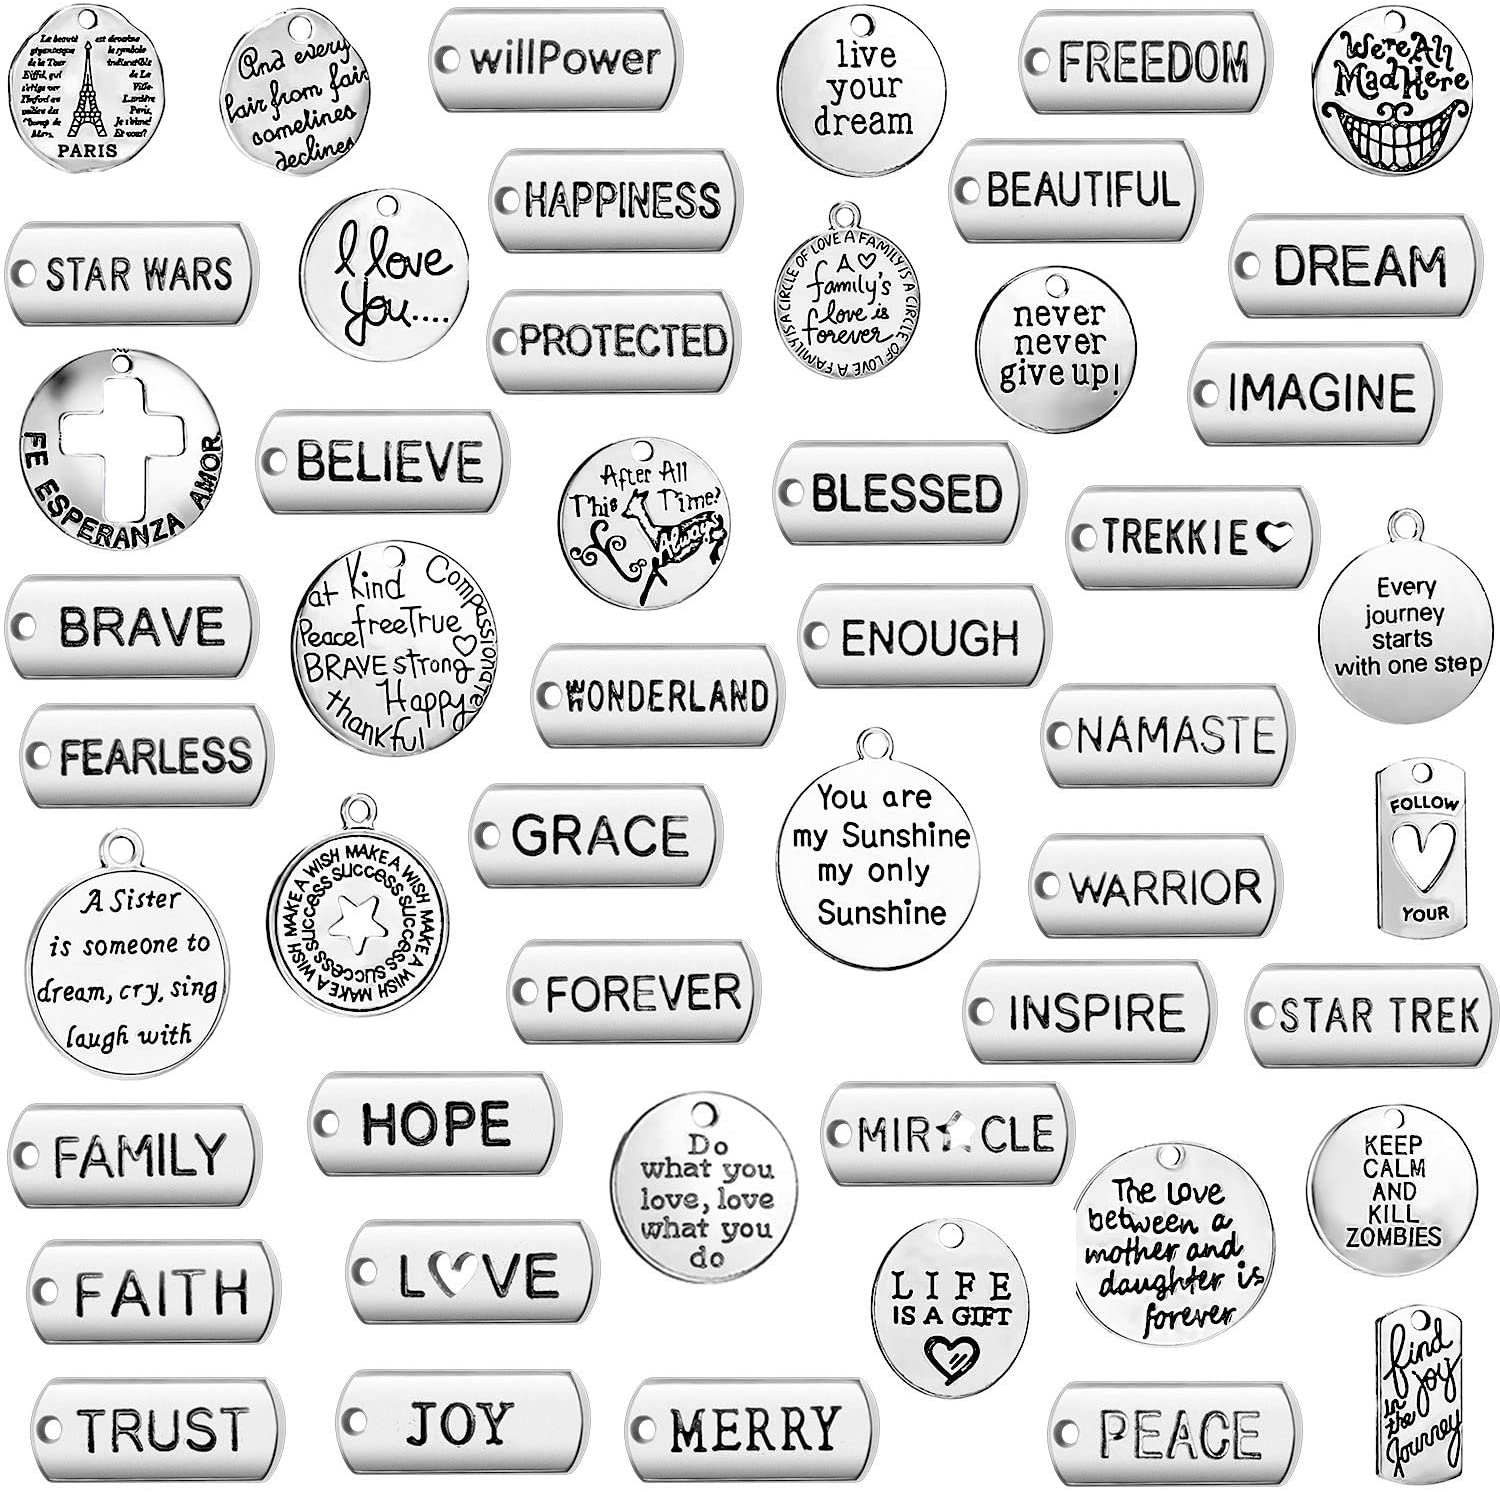 Inspiration Words Charms Pendants Engraved Motivational Charms Pendants Craft Supplies Pendants for Jewelry Making Crafting DIY Necklace Bracelet Accessories (50)